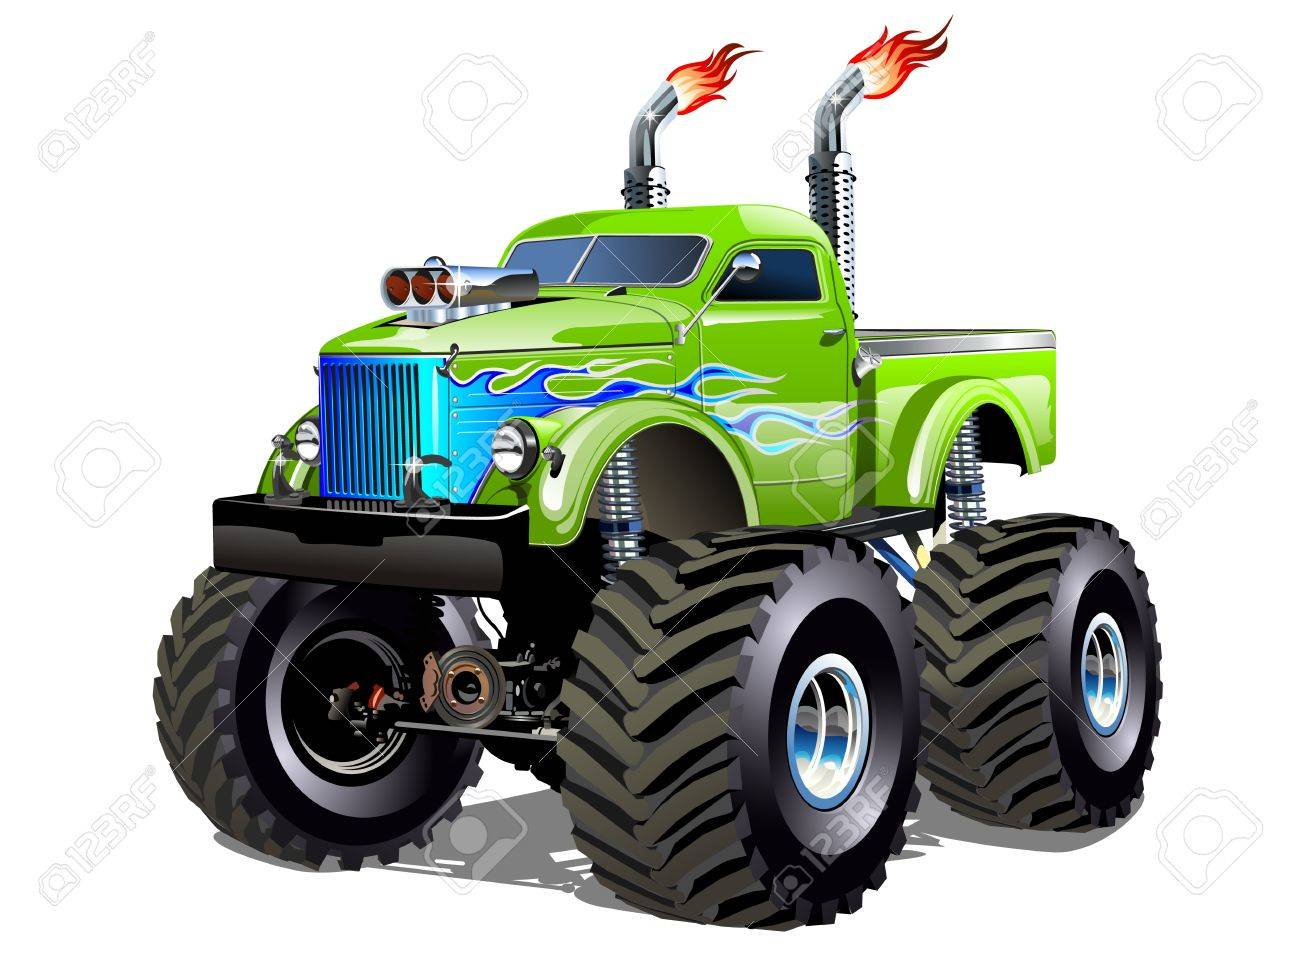 Cartoon Monster Truck Available Eps 10 Separated By Groups And Royalty Free Cliparts Vectors And Stock Illustration Image 81841145